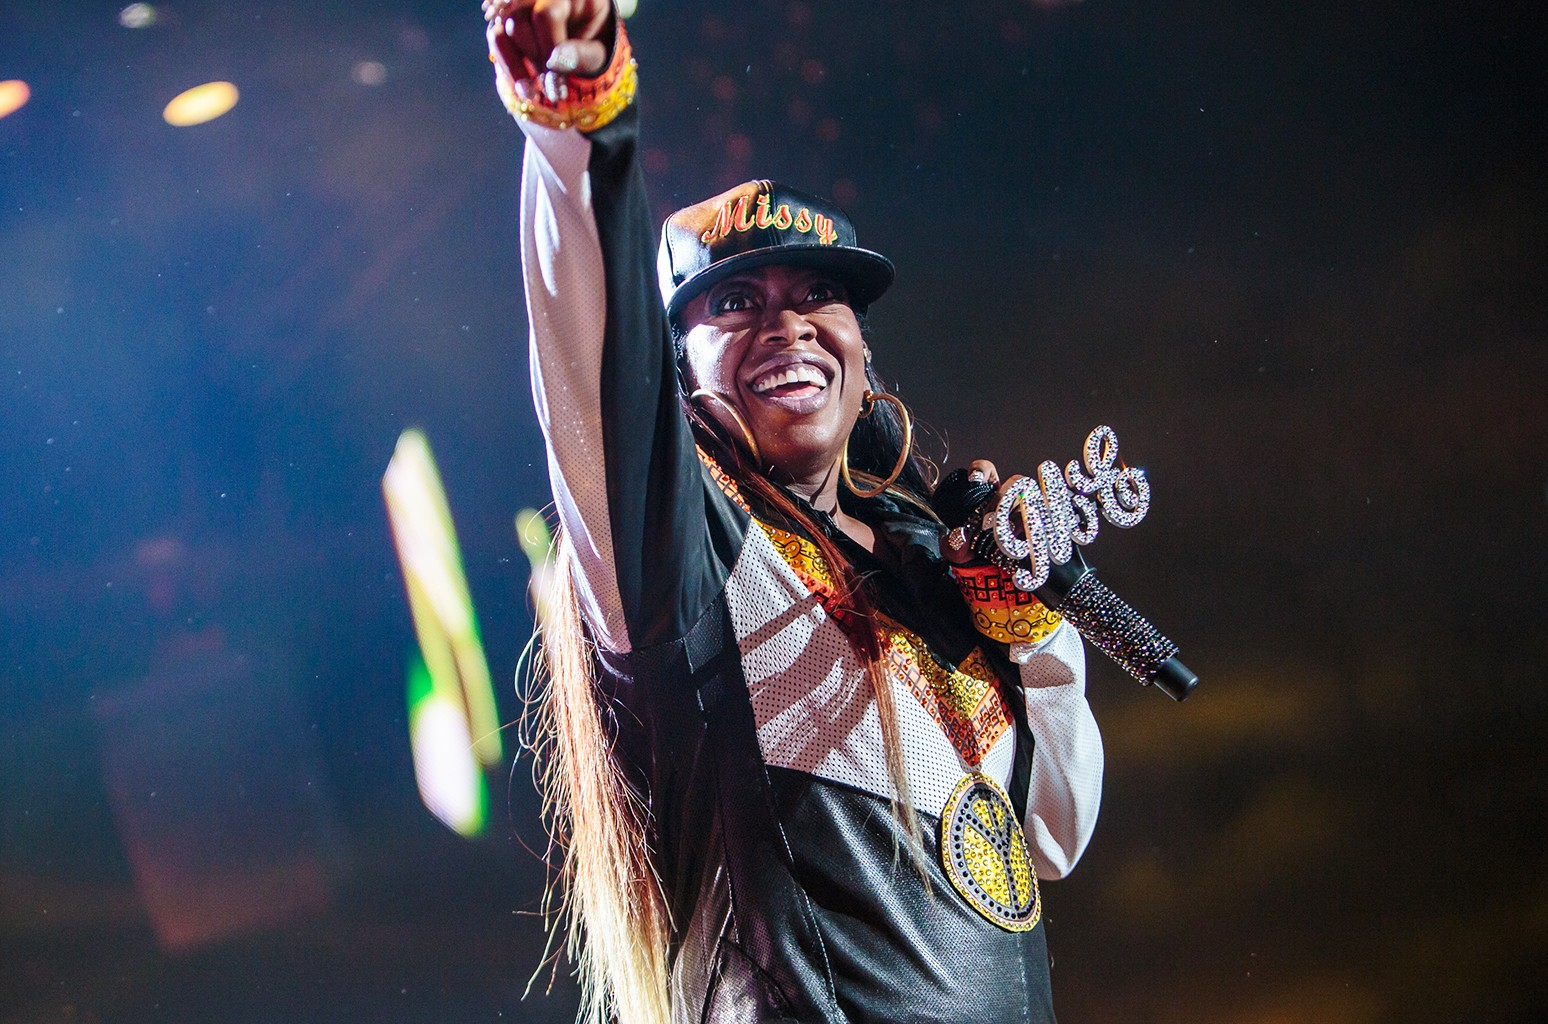 Missy Elliott performs at the 2015 Essence Music Festival on July 4, 2015 in New Orleans.